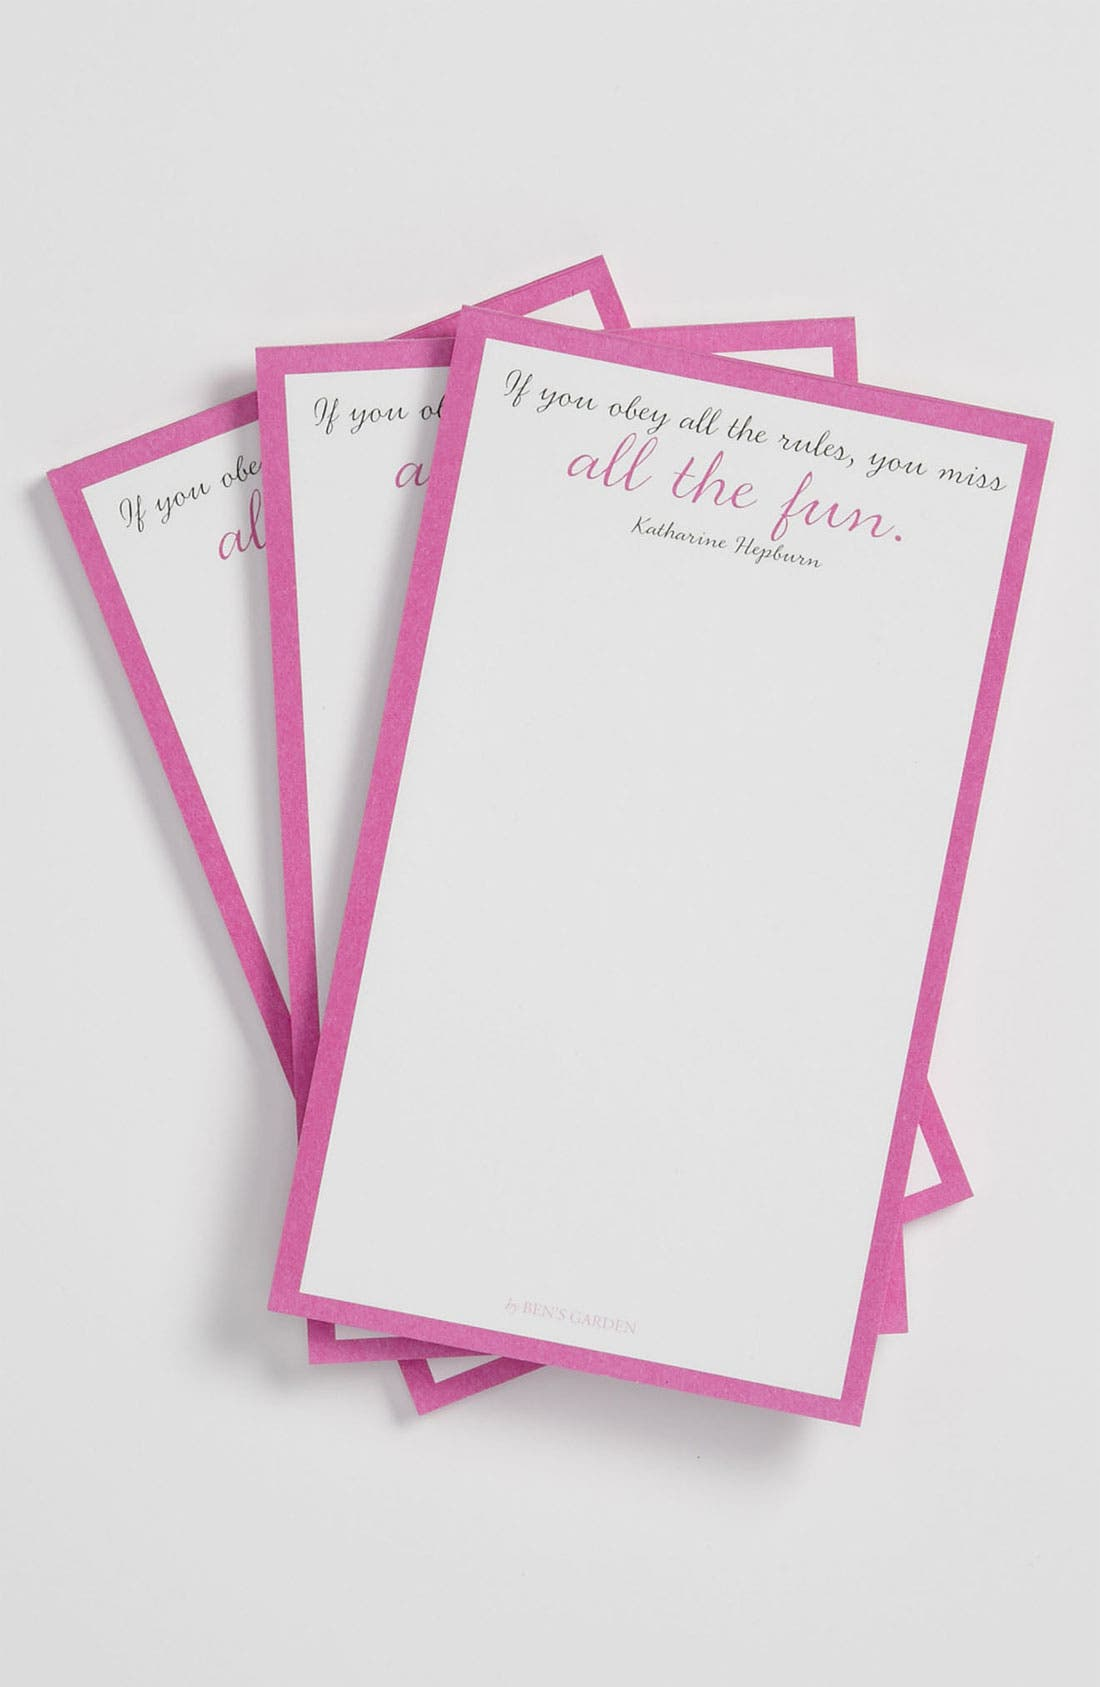 Main Image - Ben's Garden 'If You Obey All the Rules' Notepads (3-Pack)